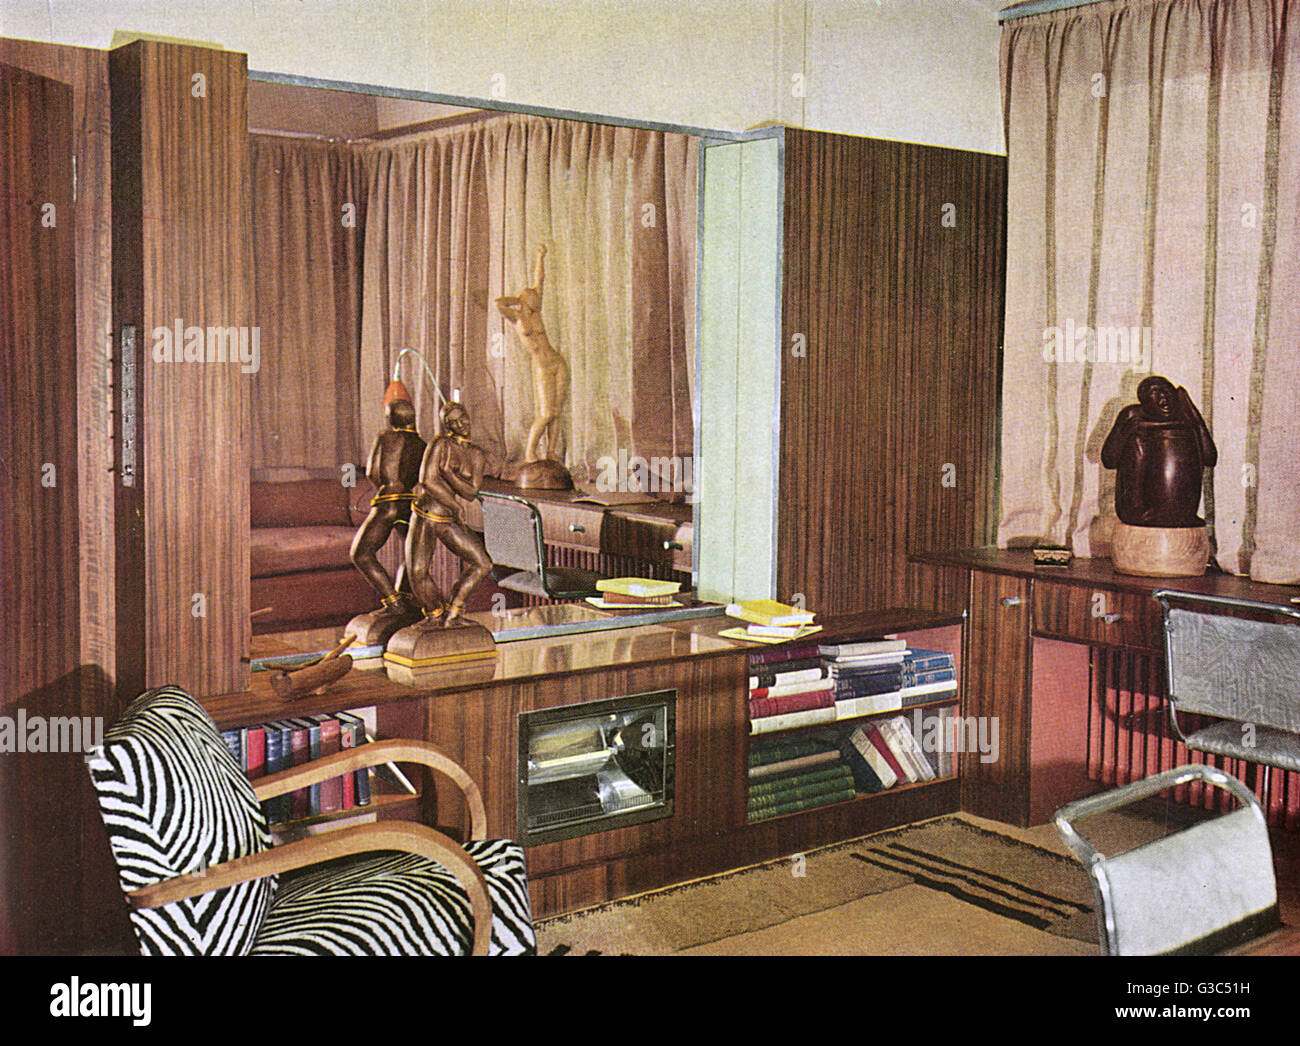 Living room and studio by Serge Chermayeff for the sculptor, A G Gibbons Grinling.       Date: 1933 - Stock Image